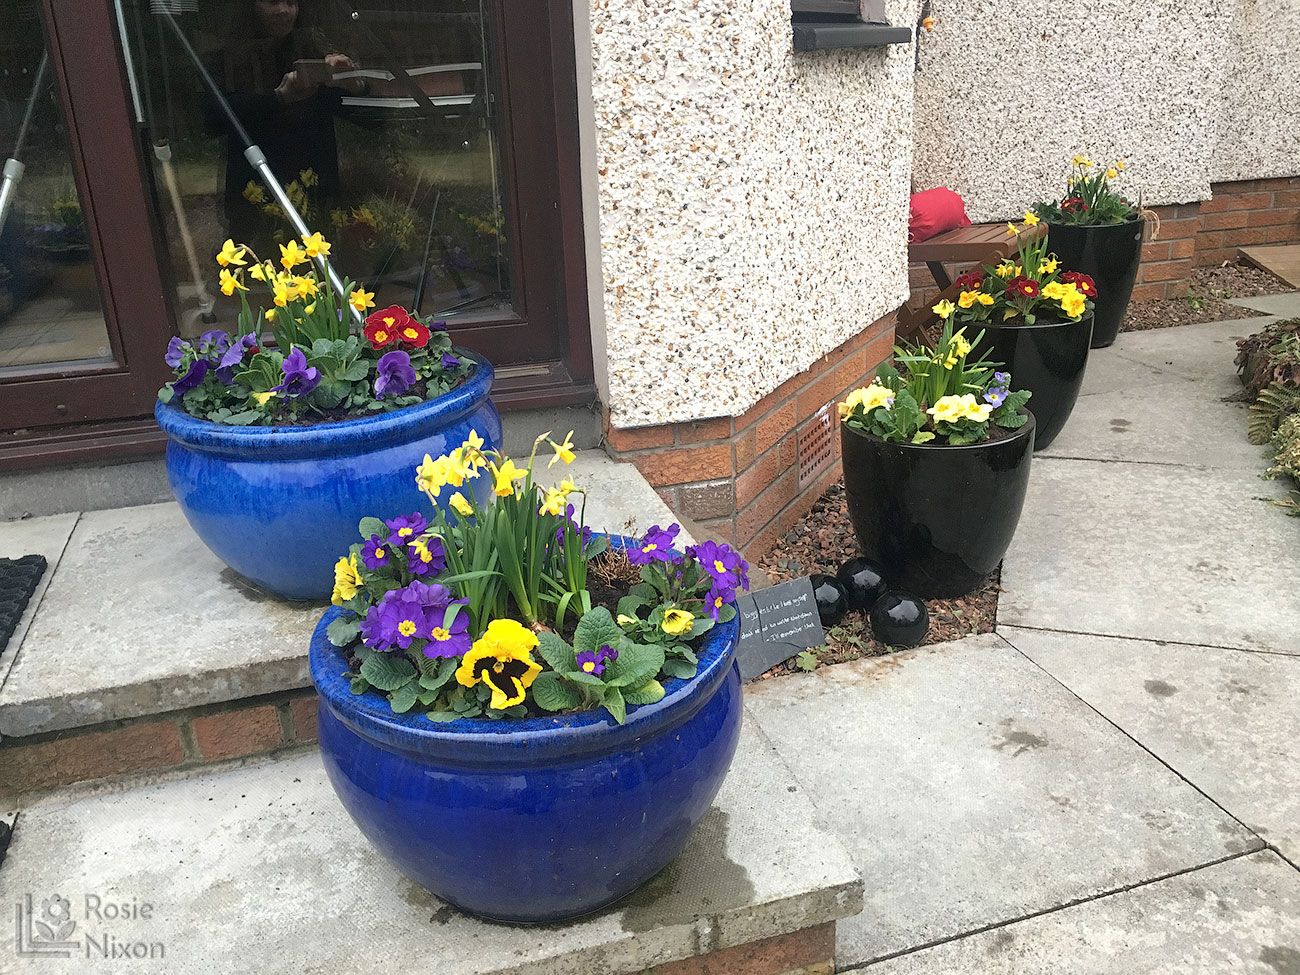 daffodils, primroses and pansies in planted containers for Beechgrove Garden